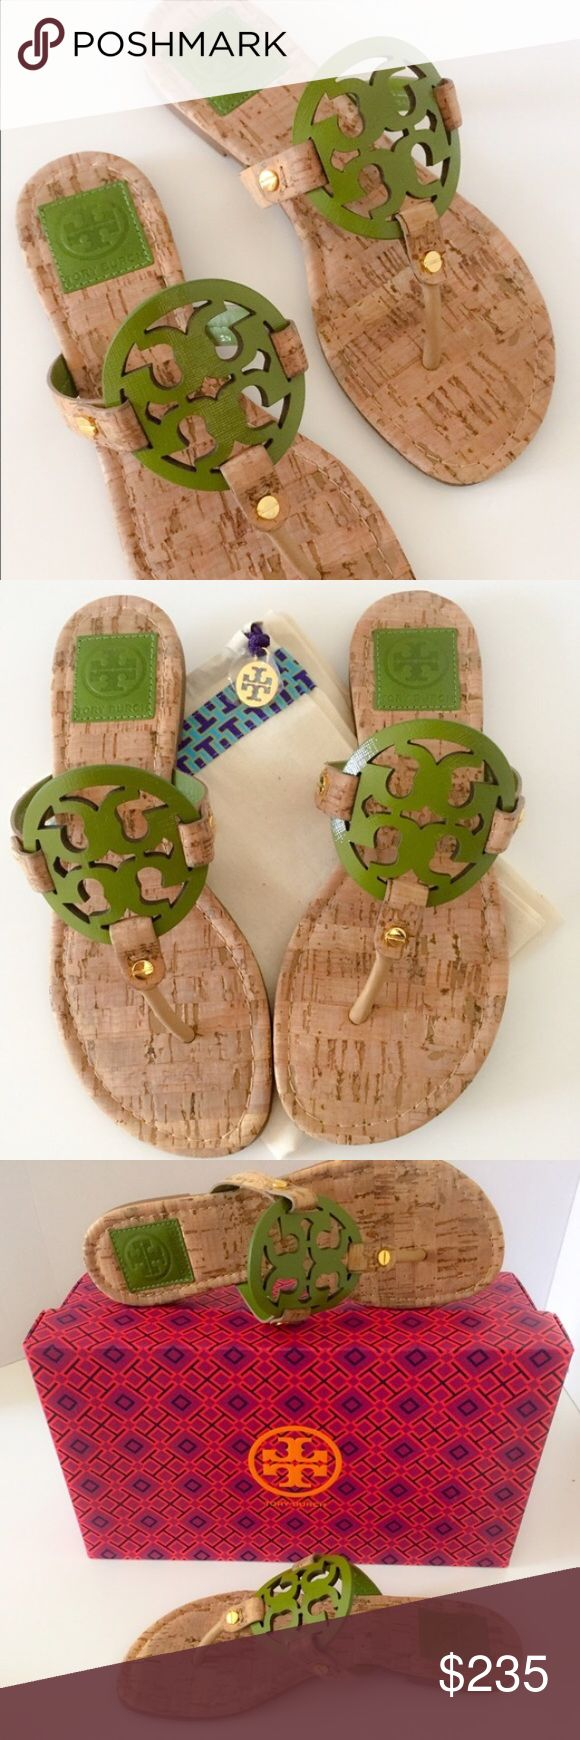 HOLD Tory Burch Miller Patent Saffiano/Cork Tory Burch Miller Patent Saffiano/Cork Sandals NIB. Rare leaf green/natural honey wheat. PRICE FIRM. Tory Burch Shoes Sandals